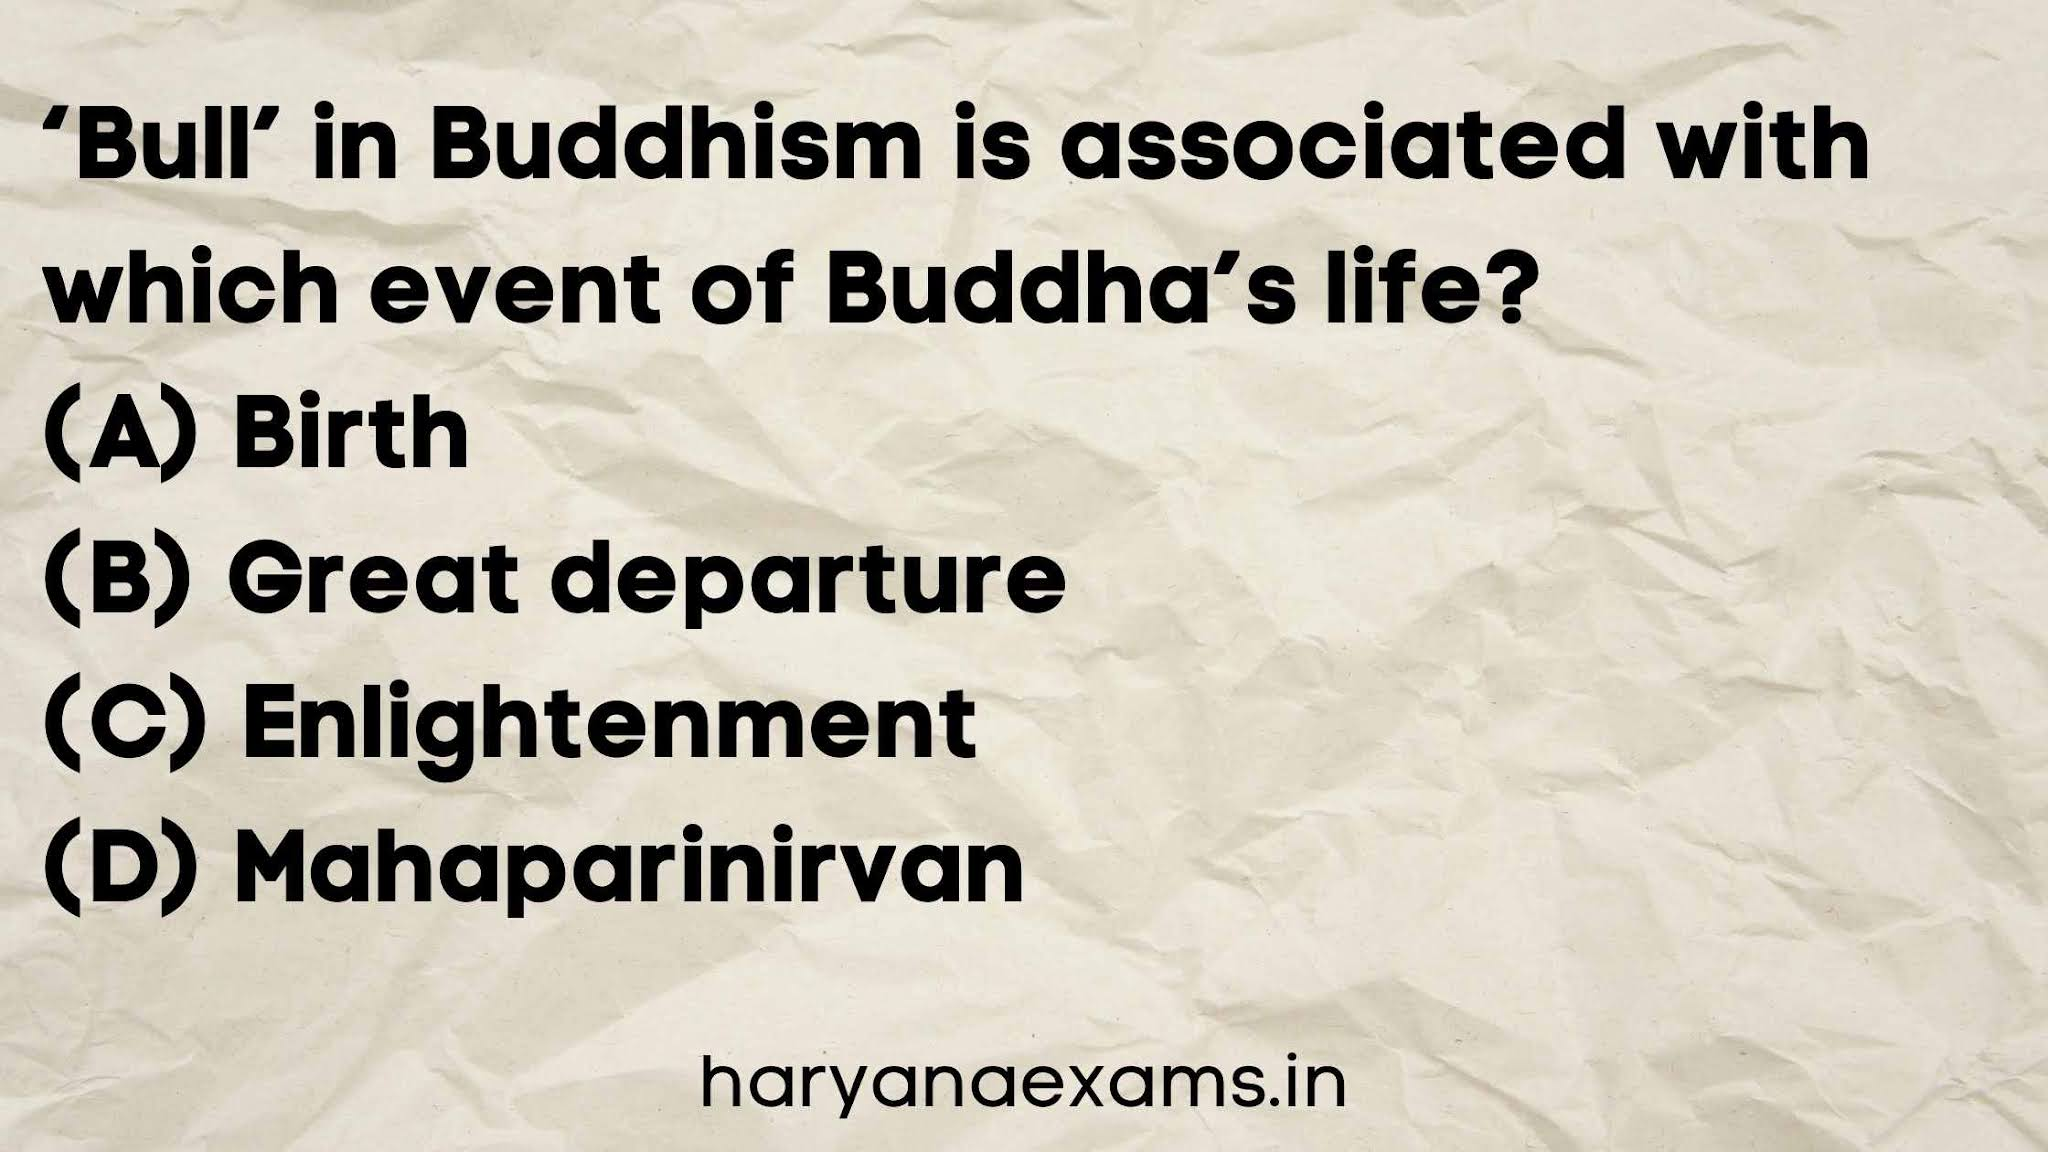 'Bull' in Buddhism is associated with which event of Buddha's life?